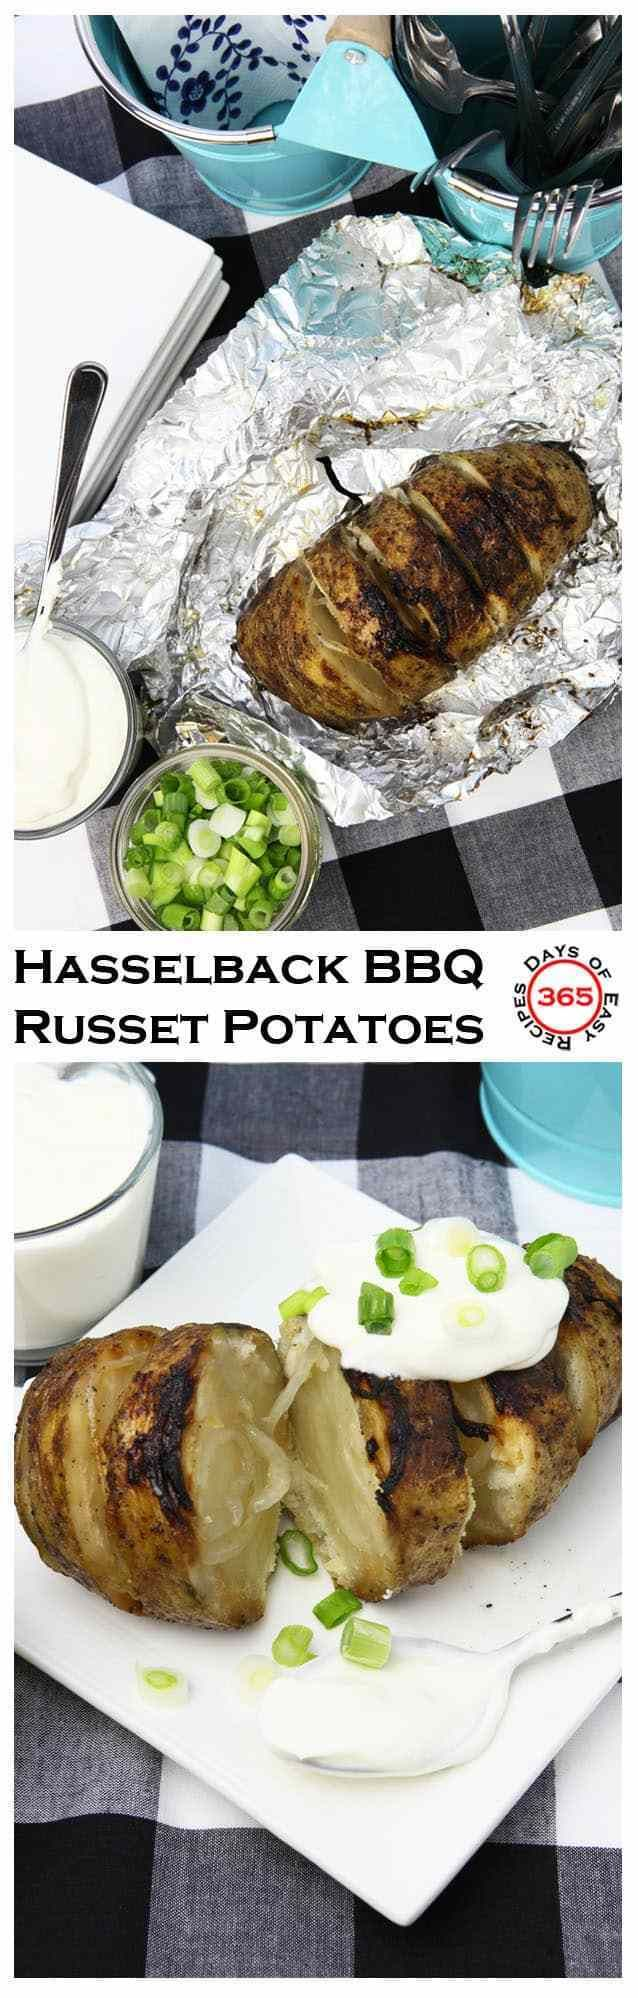 Hasselback BBQ Russet Potatoes #russetpotatorecipes